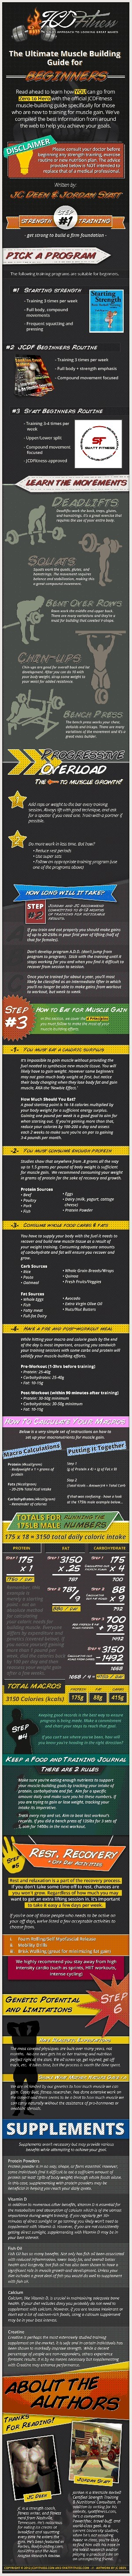 The Ultimate Muscle Building Guide for Beginners[INFOGRAPHIC] | top 10 | Scoop.it